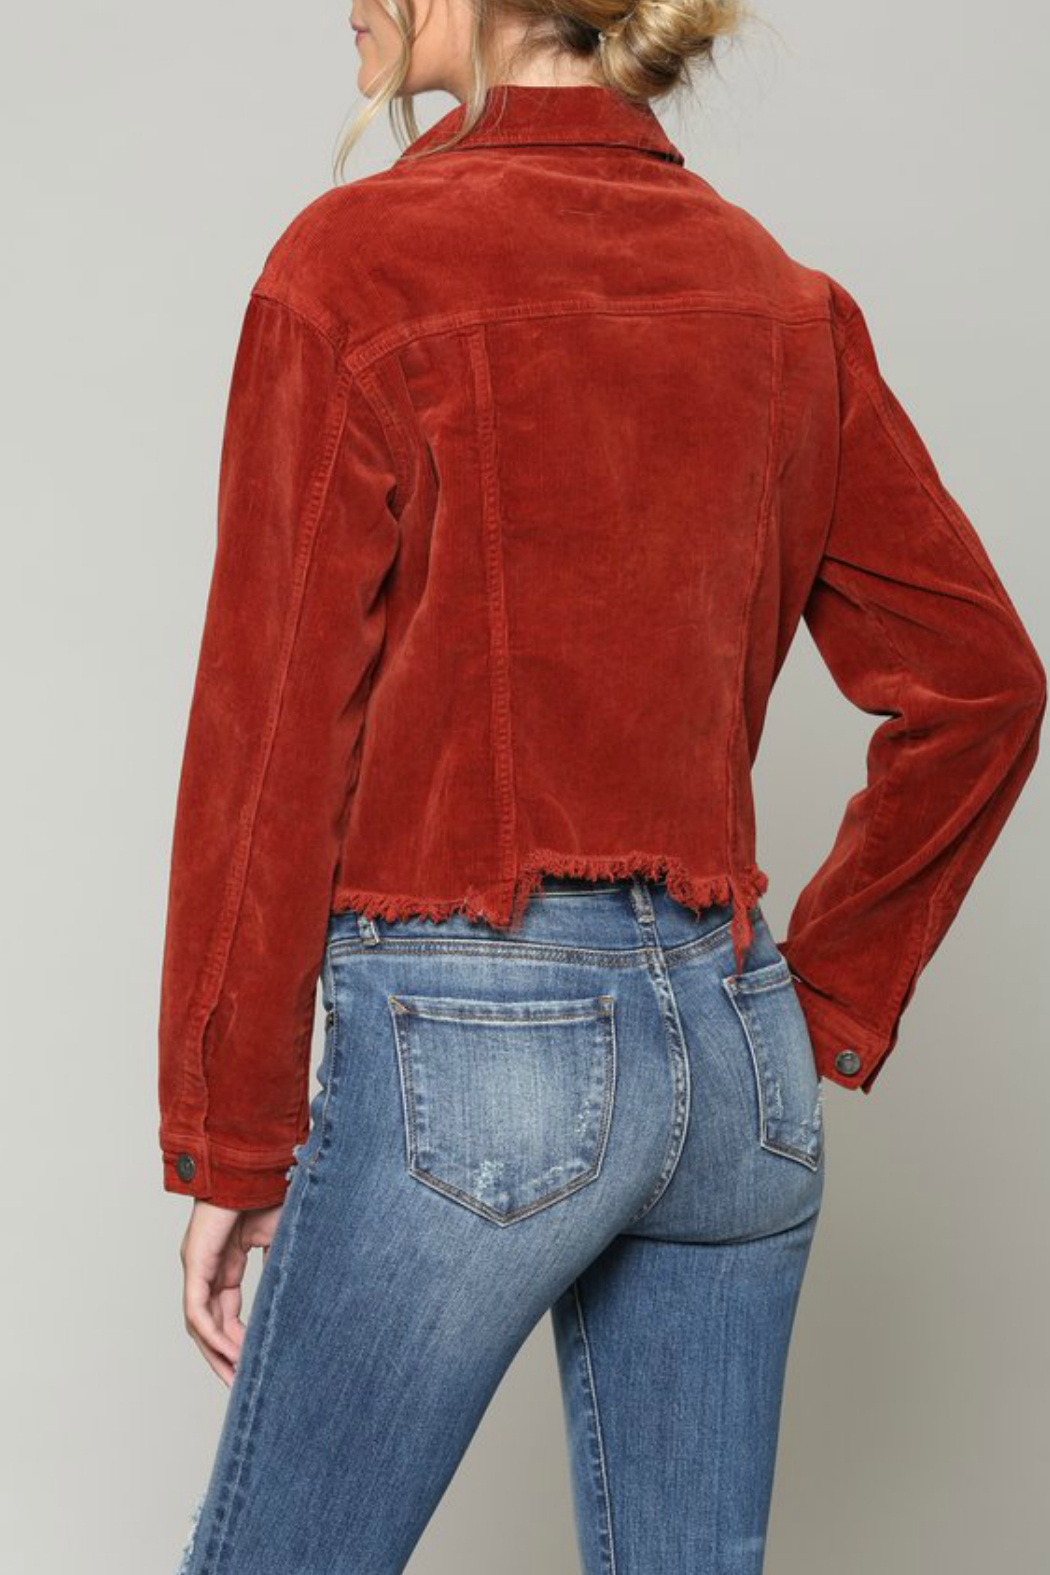 Hidden Jeans Cropped fitted jacket - Side Cropped Image